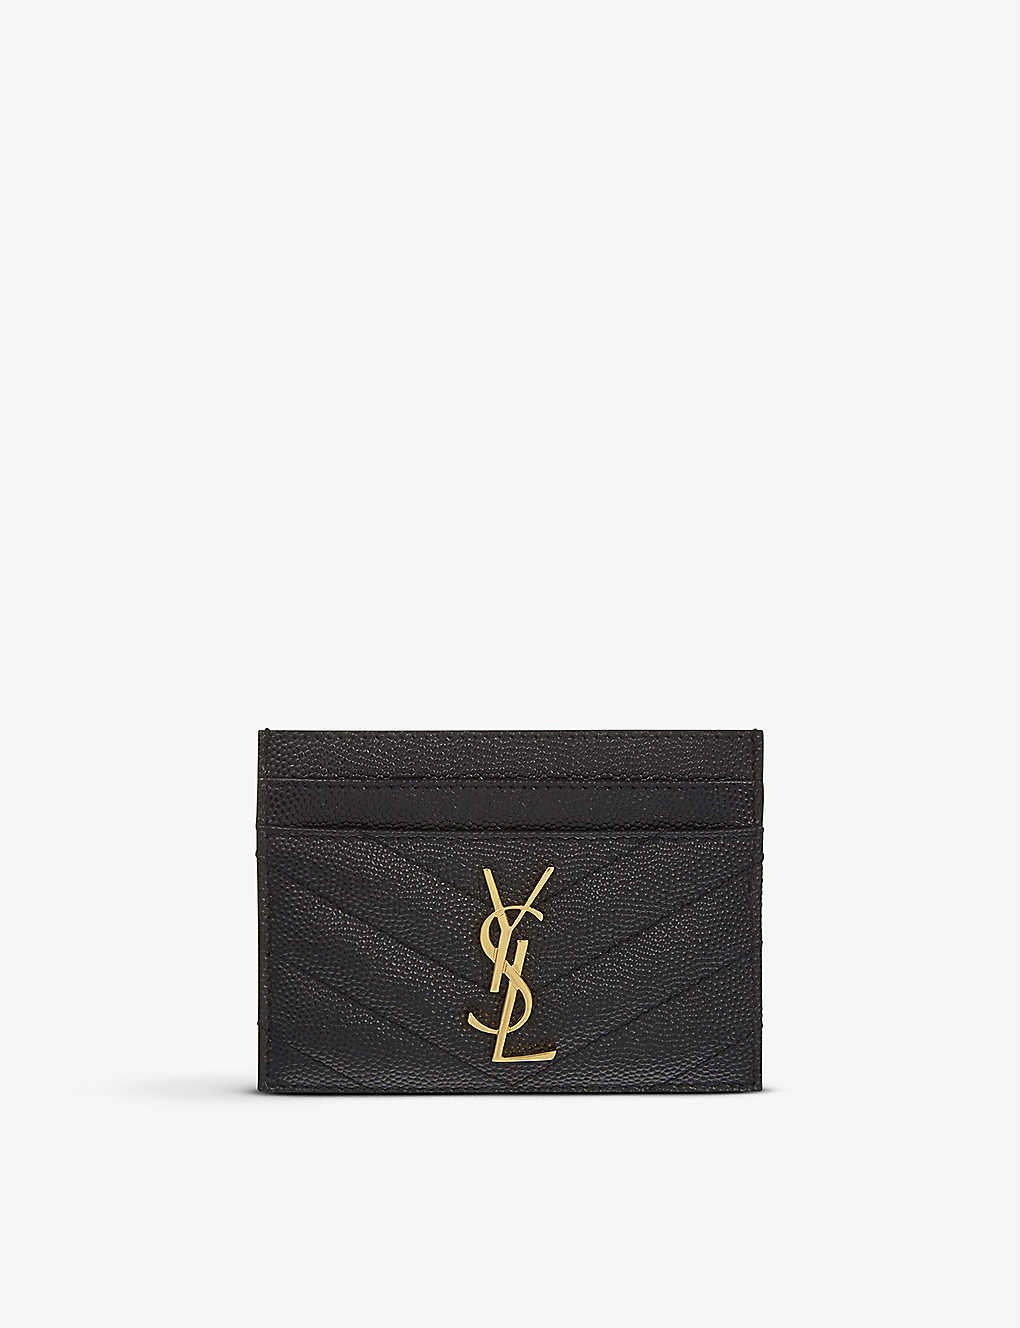 25beb227327 SAINT LAURENT - Monogram quilted leather card holder | Selfridges.com